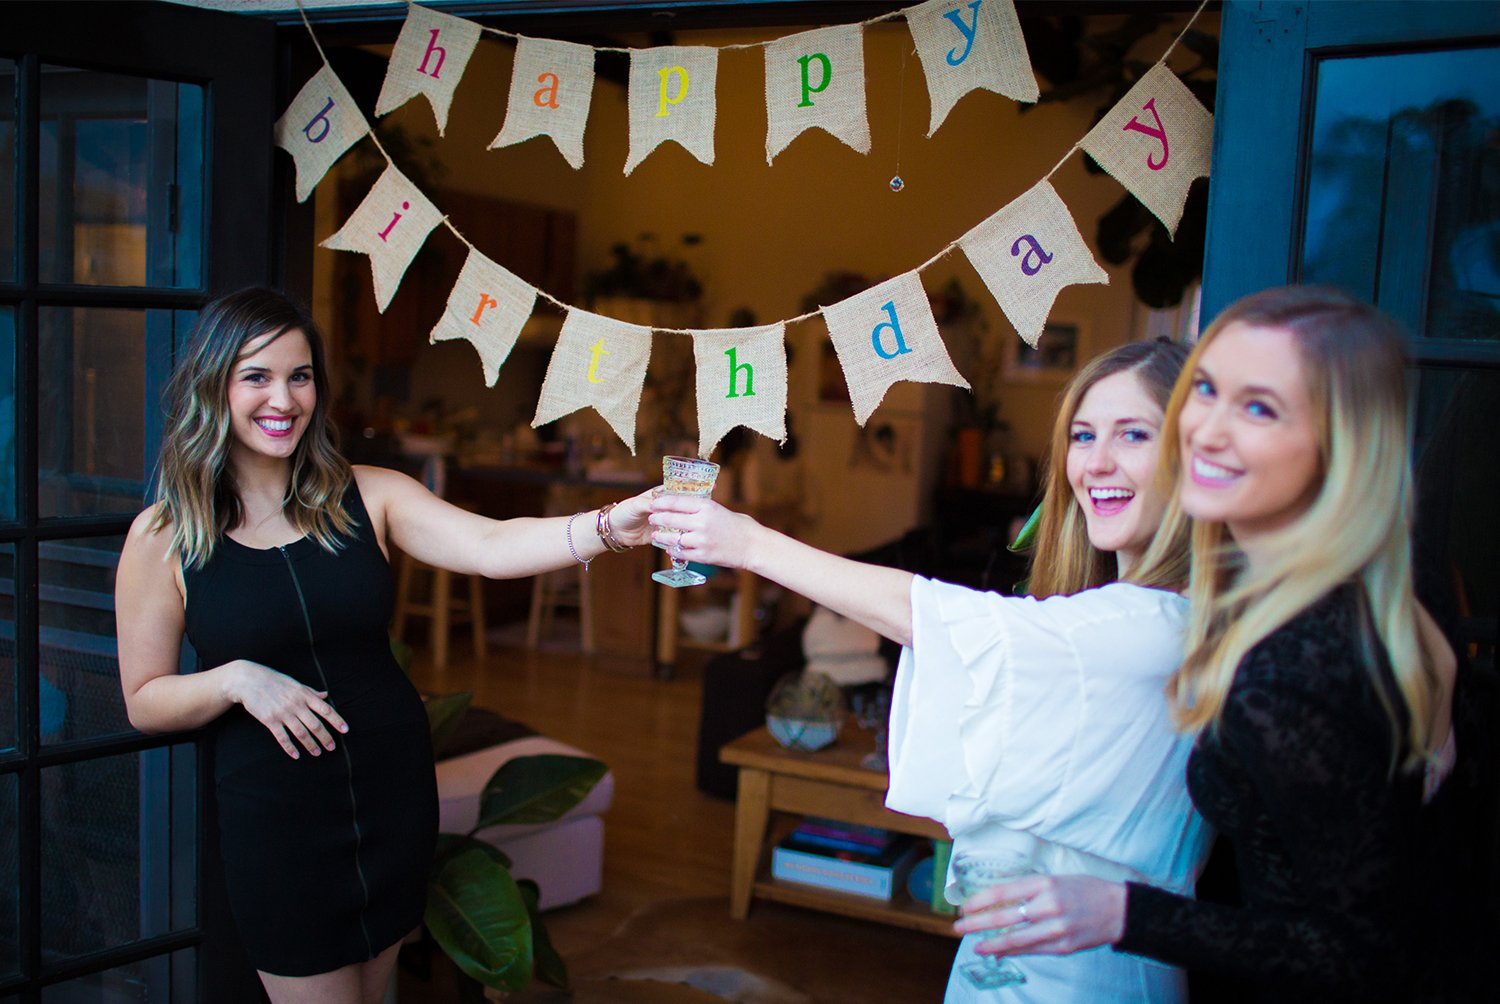 Rustic Burlap Happy Birthday Banner - Premium Quality Birthday Party Decortions by The Sterling James Company SYNCHKG076635